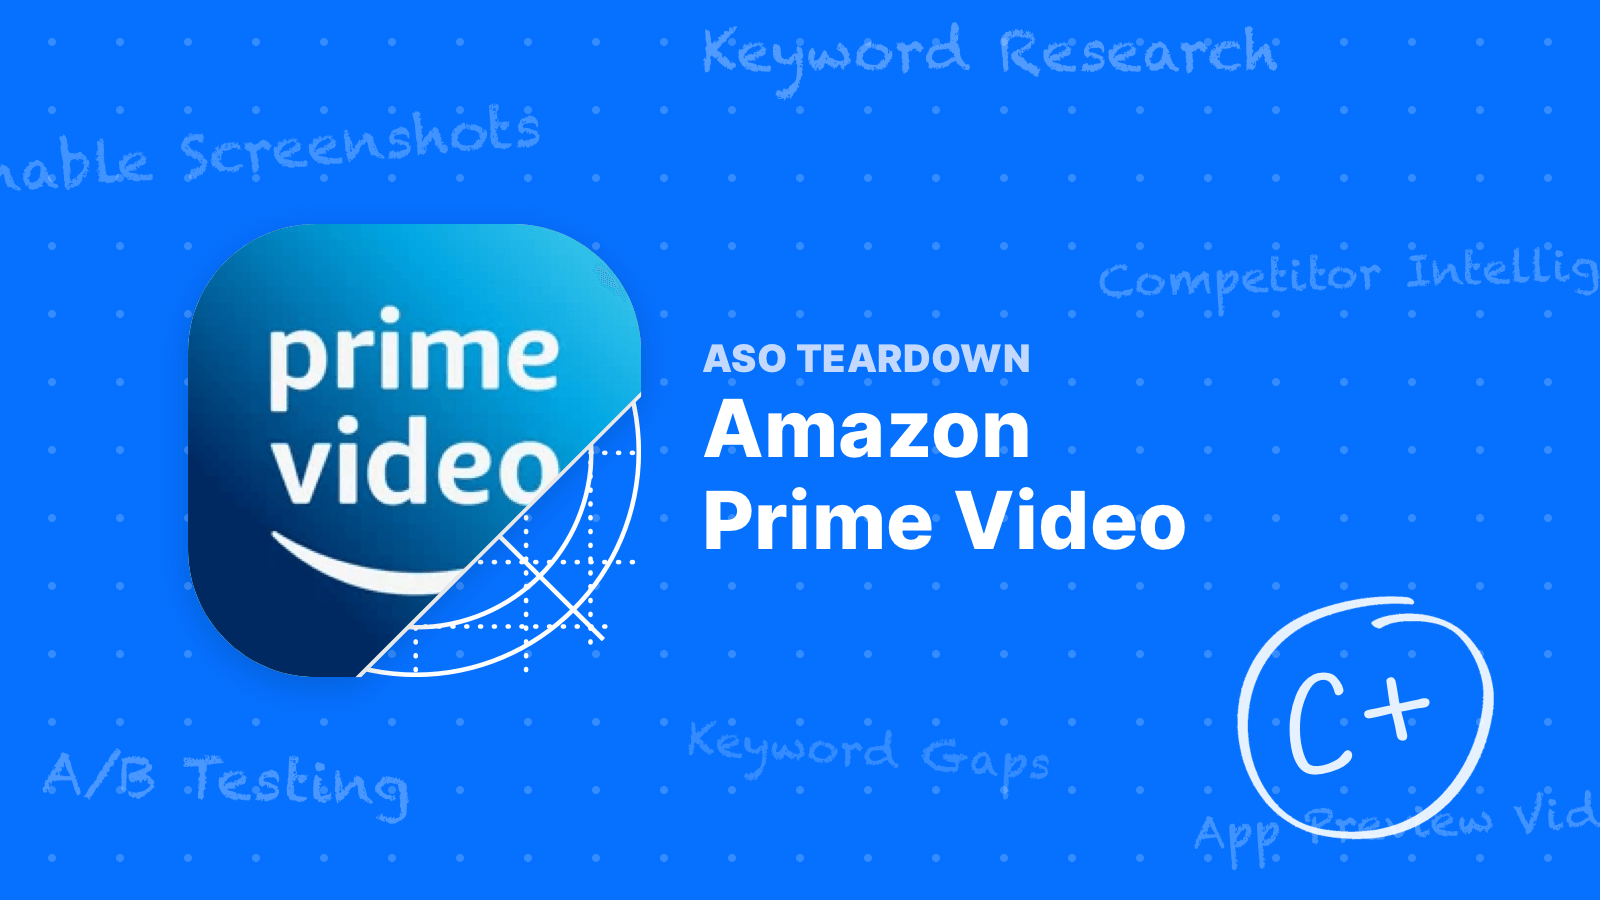 ASO Teardown - A Lot of Opportunities for Amazon Prime Video